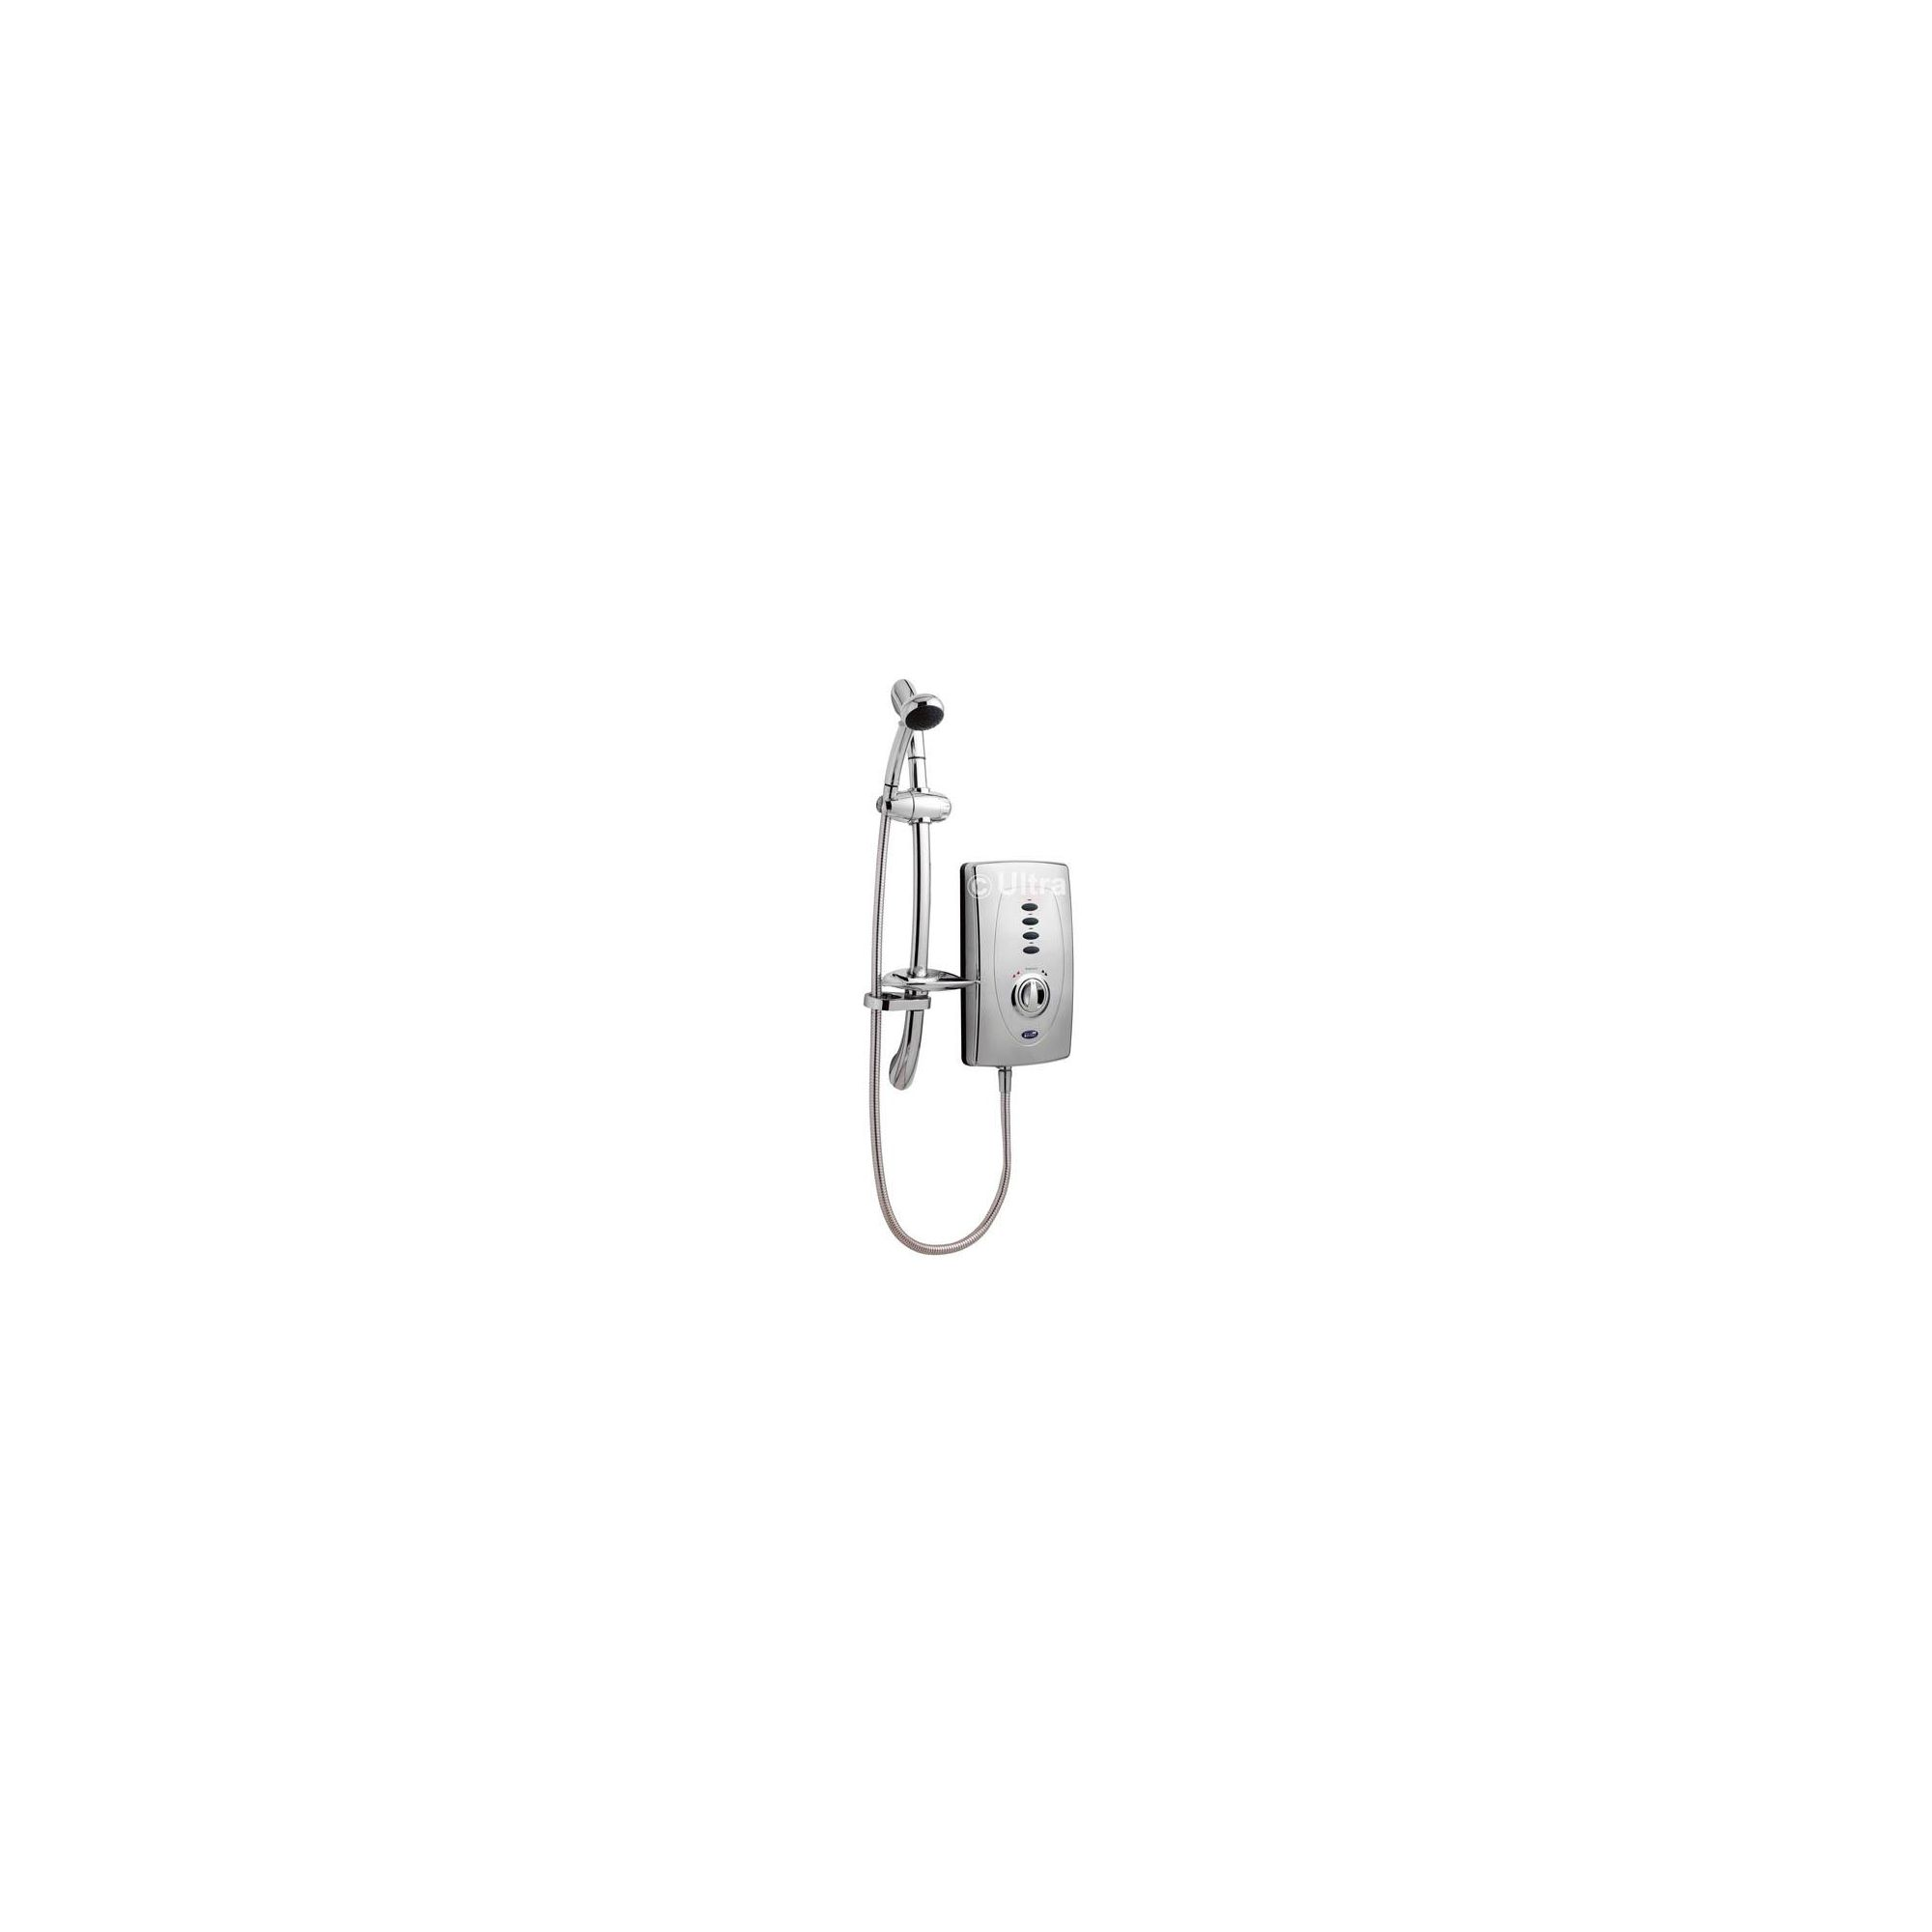 Ultra Chic 650 Slimline Electric Shower Chrome 10.5kW at Tesco Direct